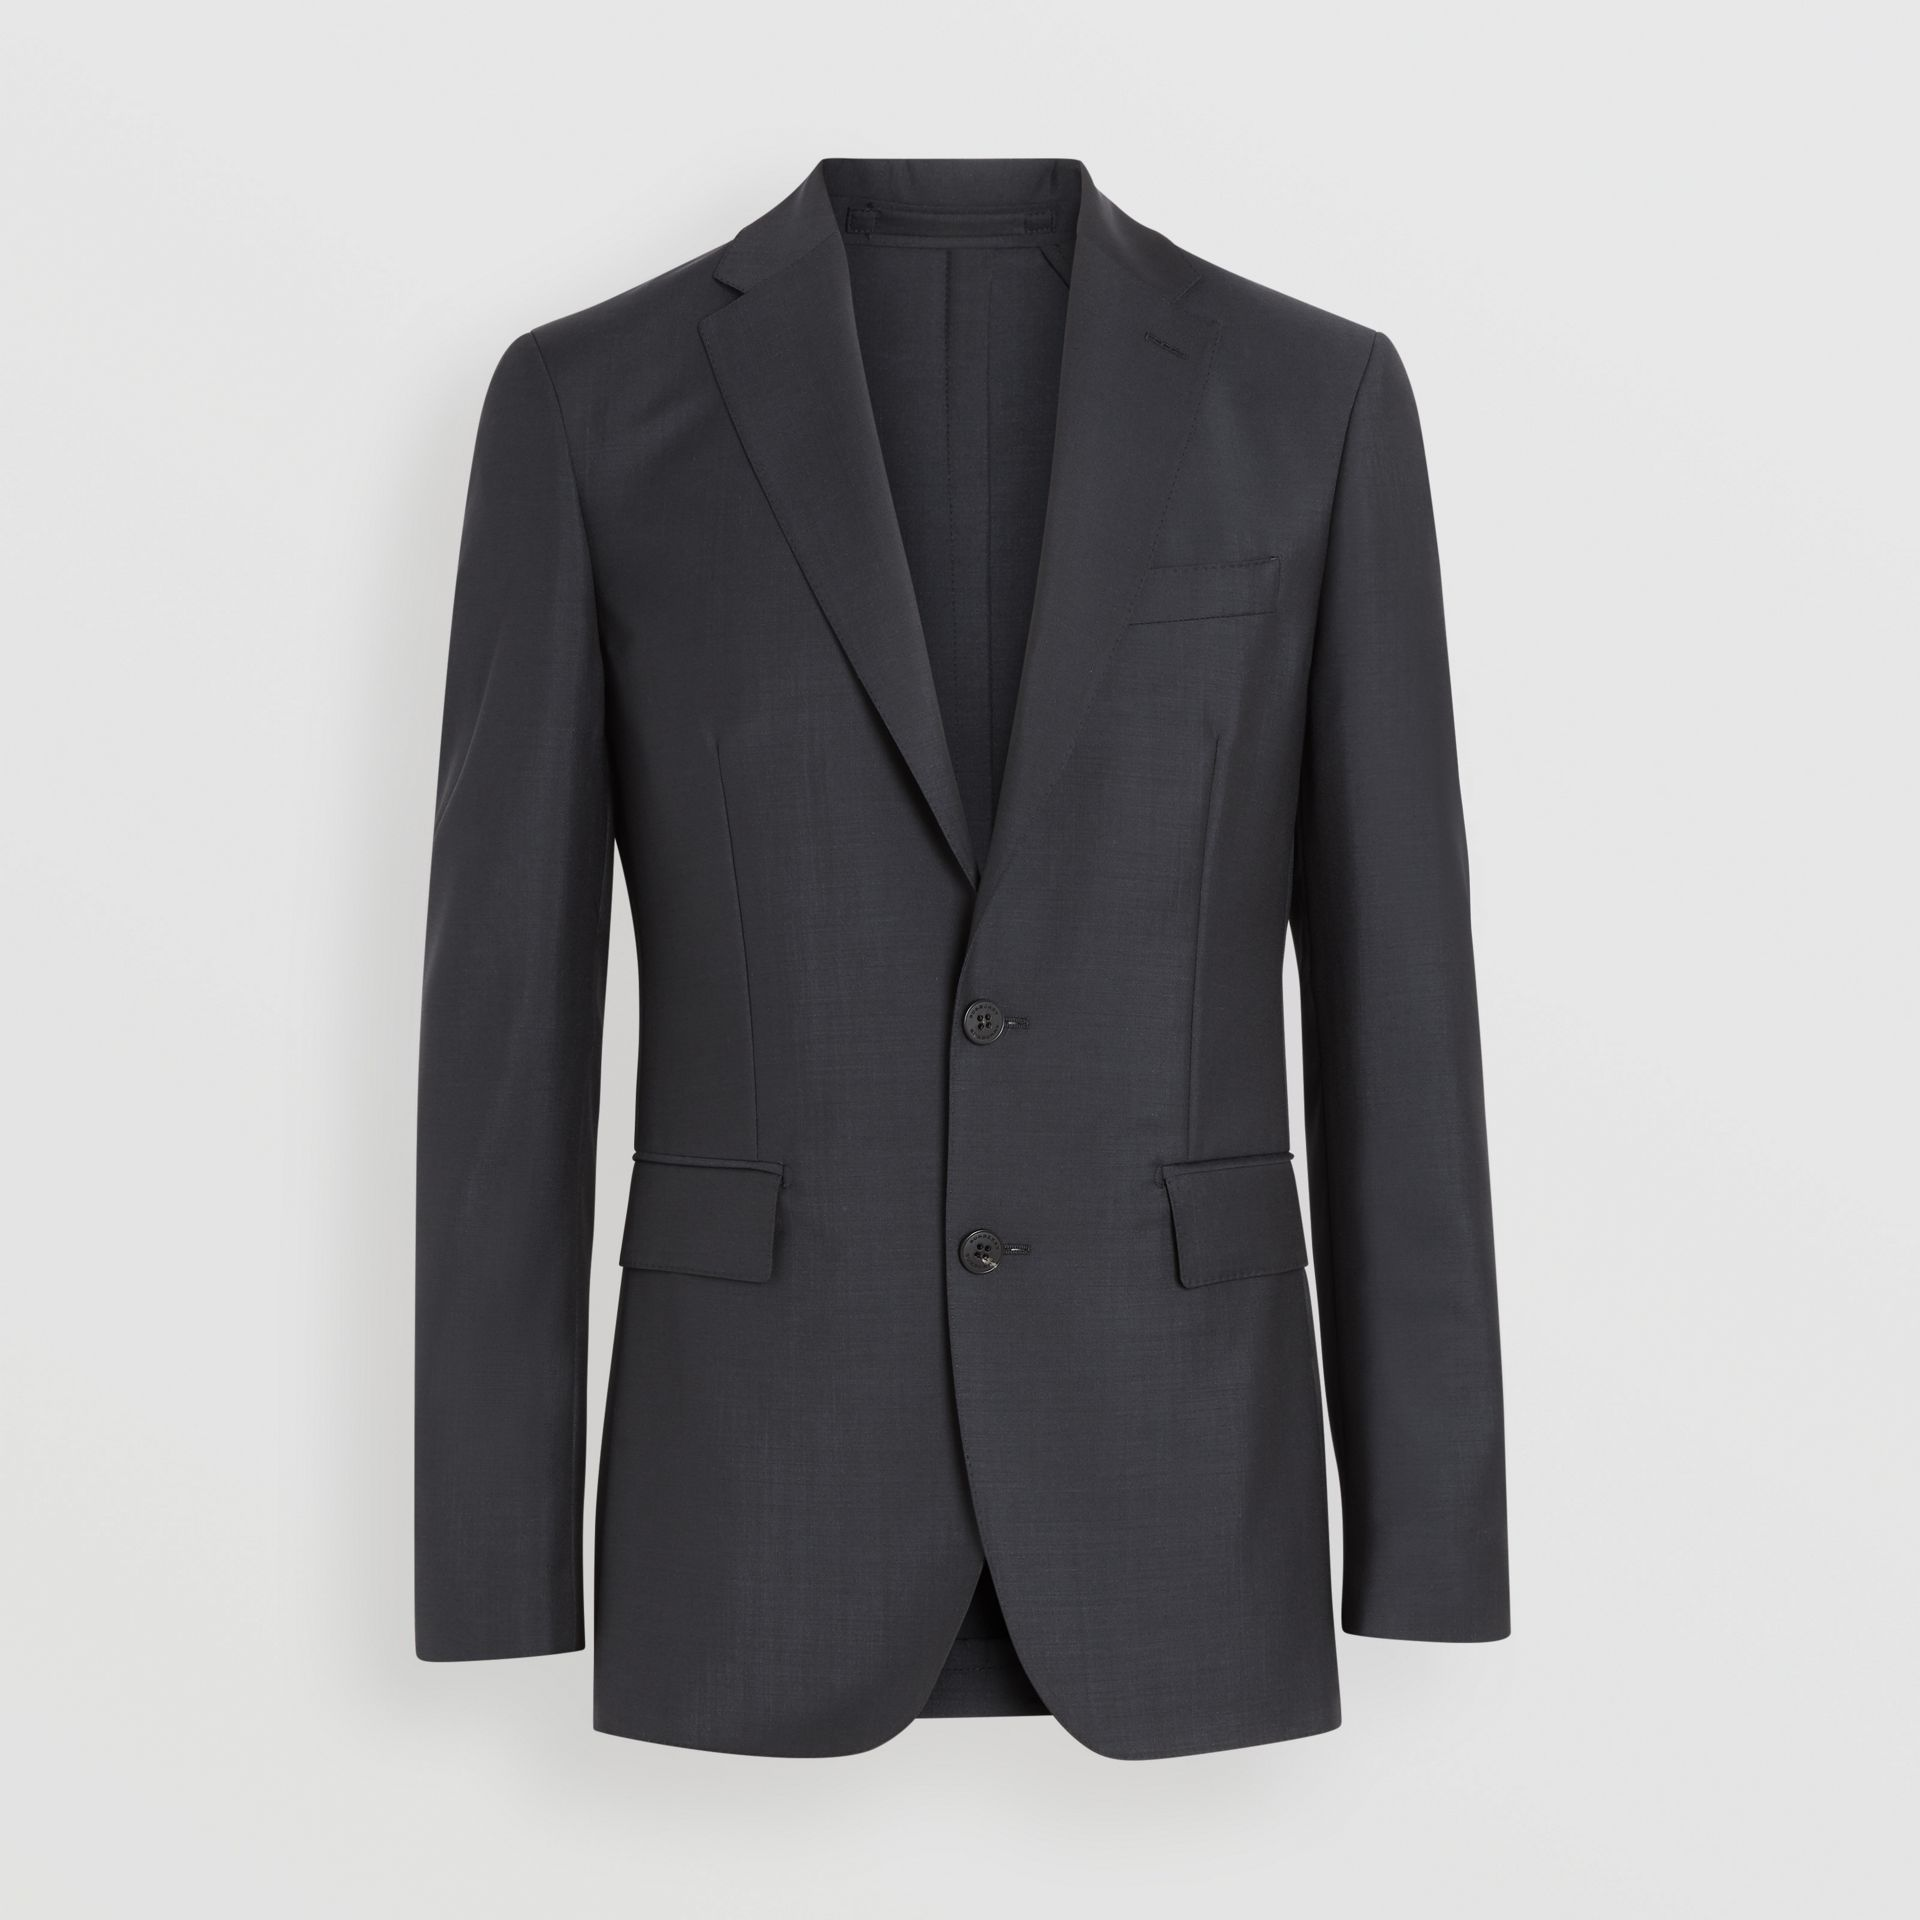 Soho Fit Wool Mohair Suit in Dark Grey Melange - Men | Burberry United Kingdom - gallery image 3